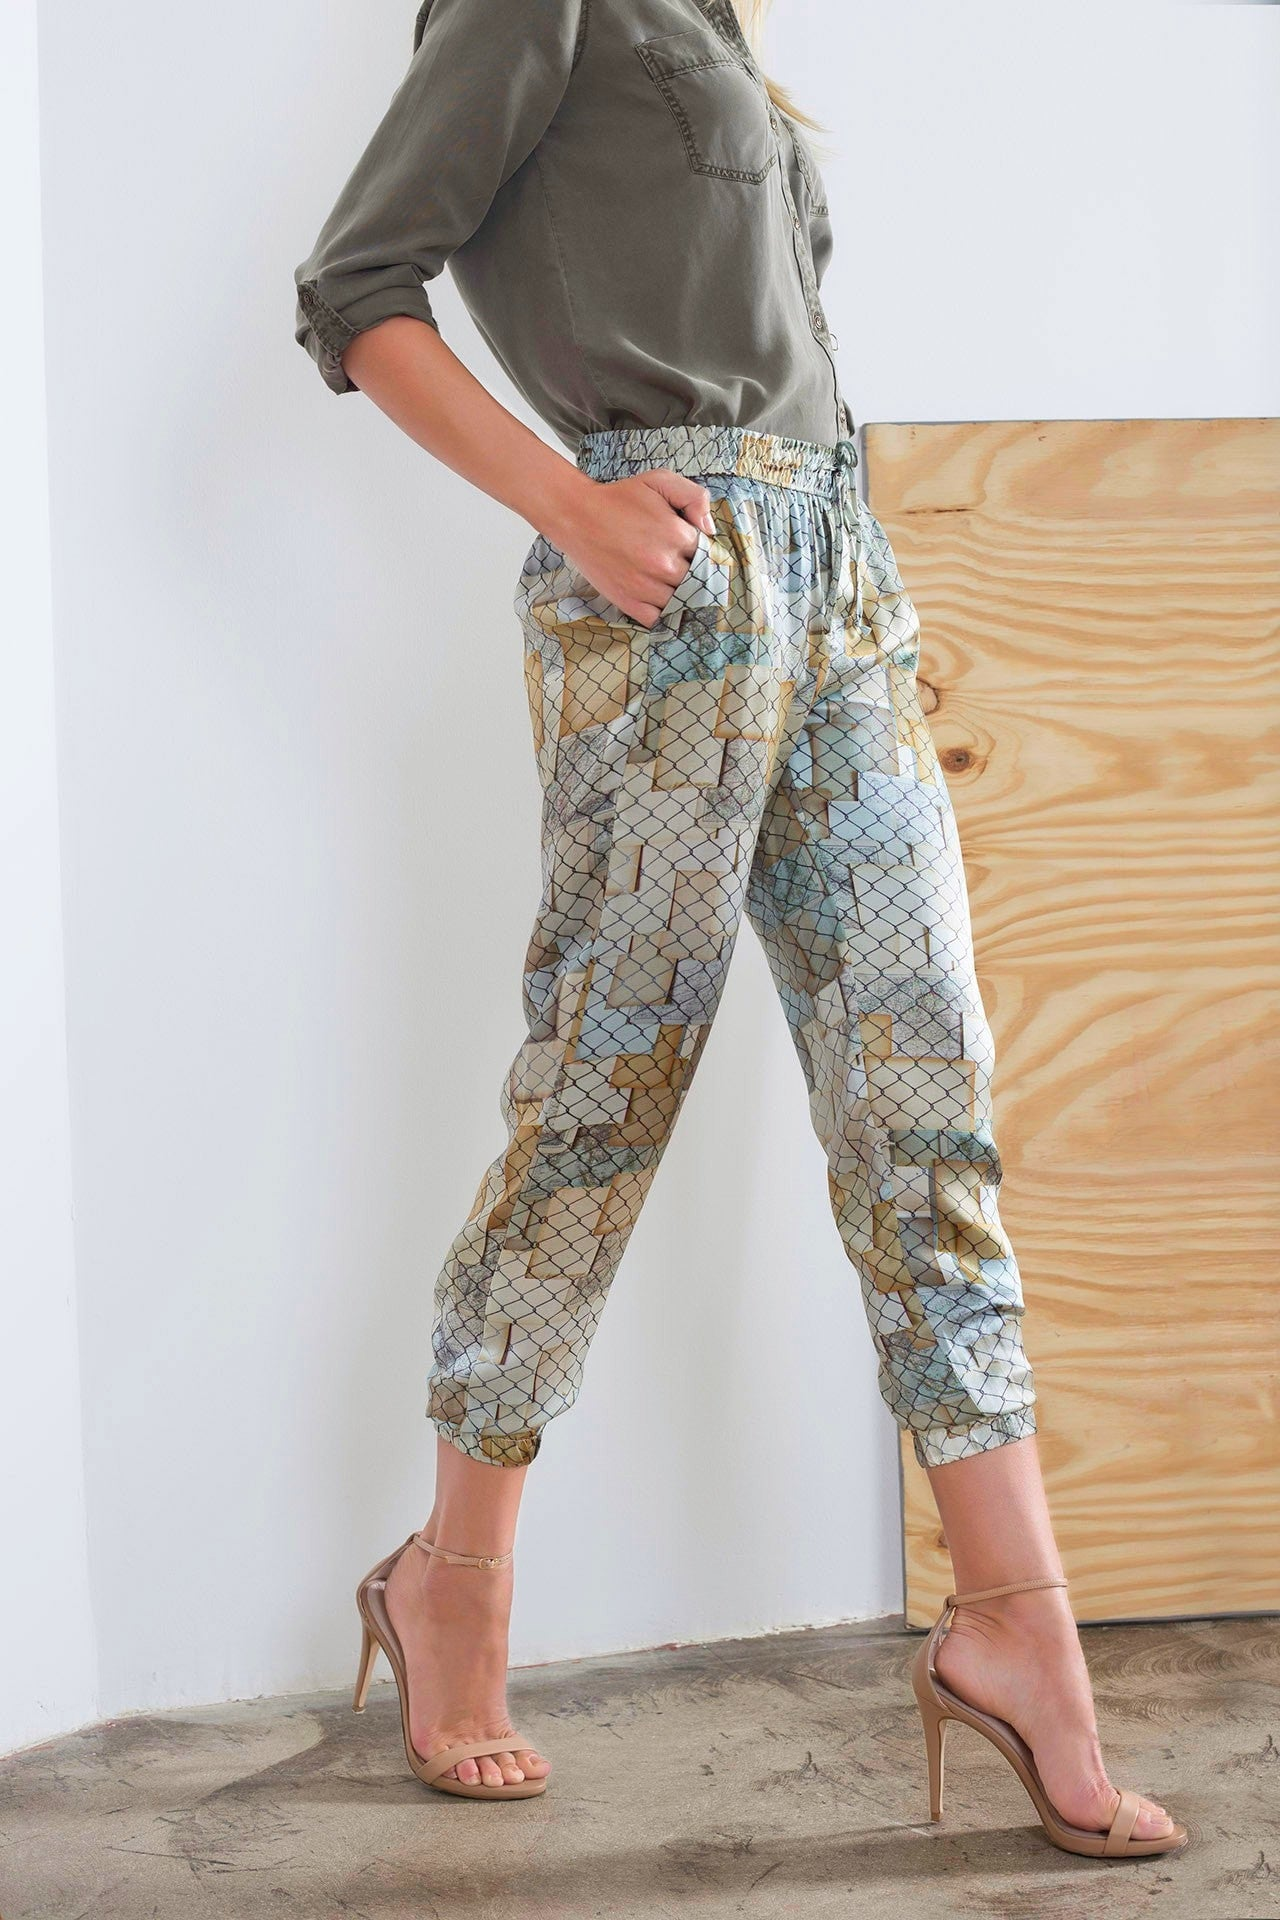 Full detail view of silk jogger pants with golden and silver hues designed by artist Mauro Giaconi